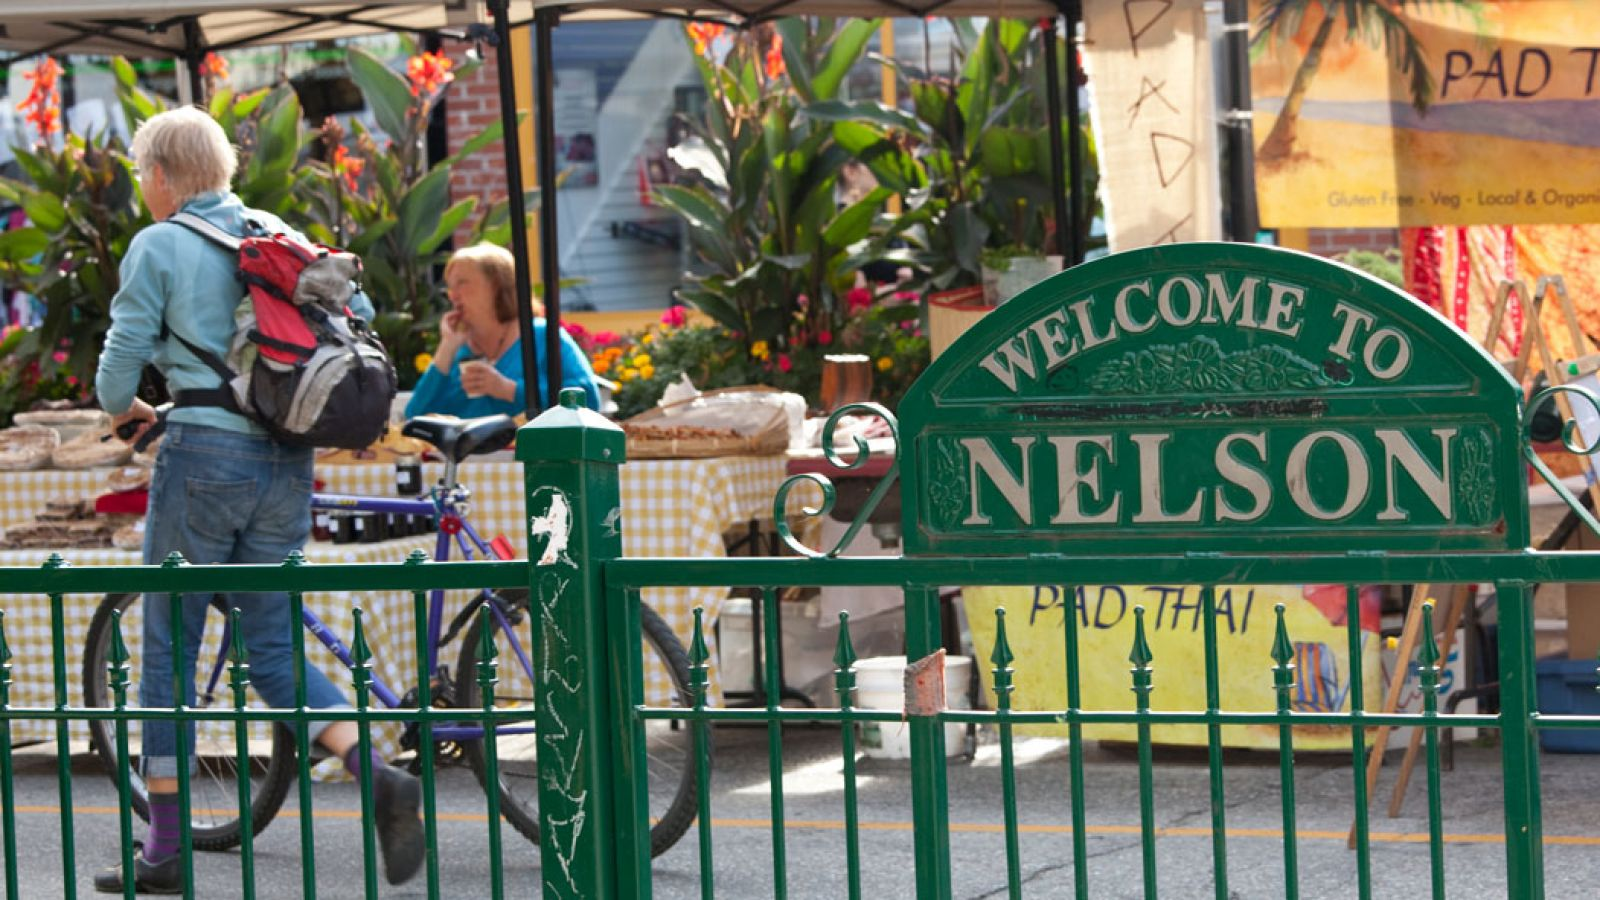 The heritage city of Nelson welcomes you.